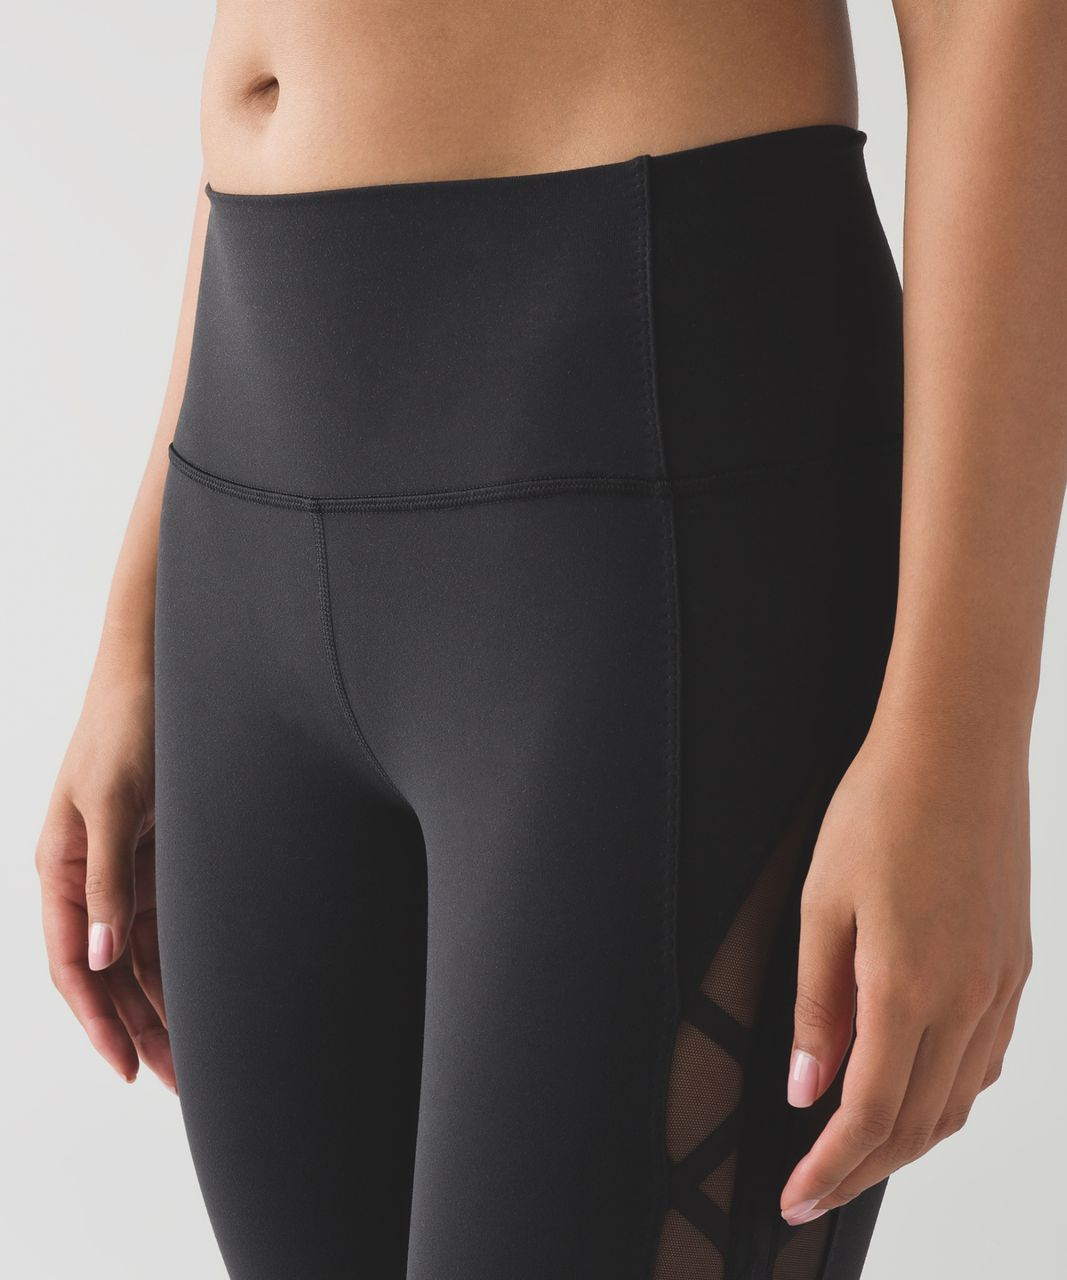 Lululemon High Times Pant (Rhythm) - Black